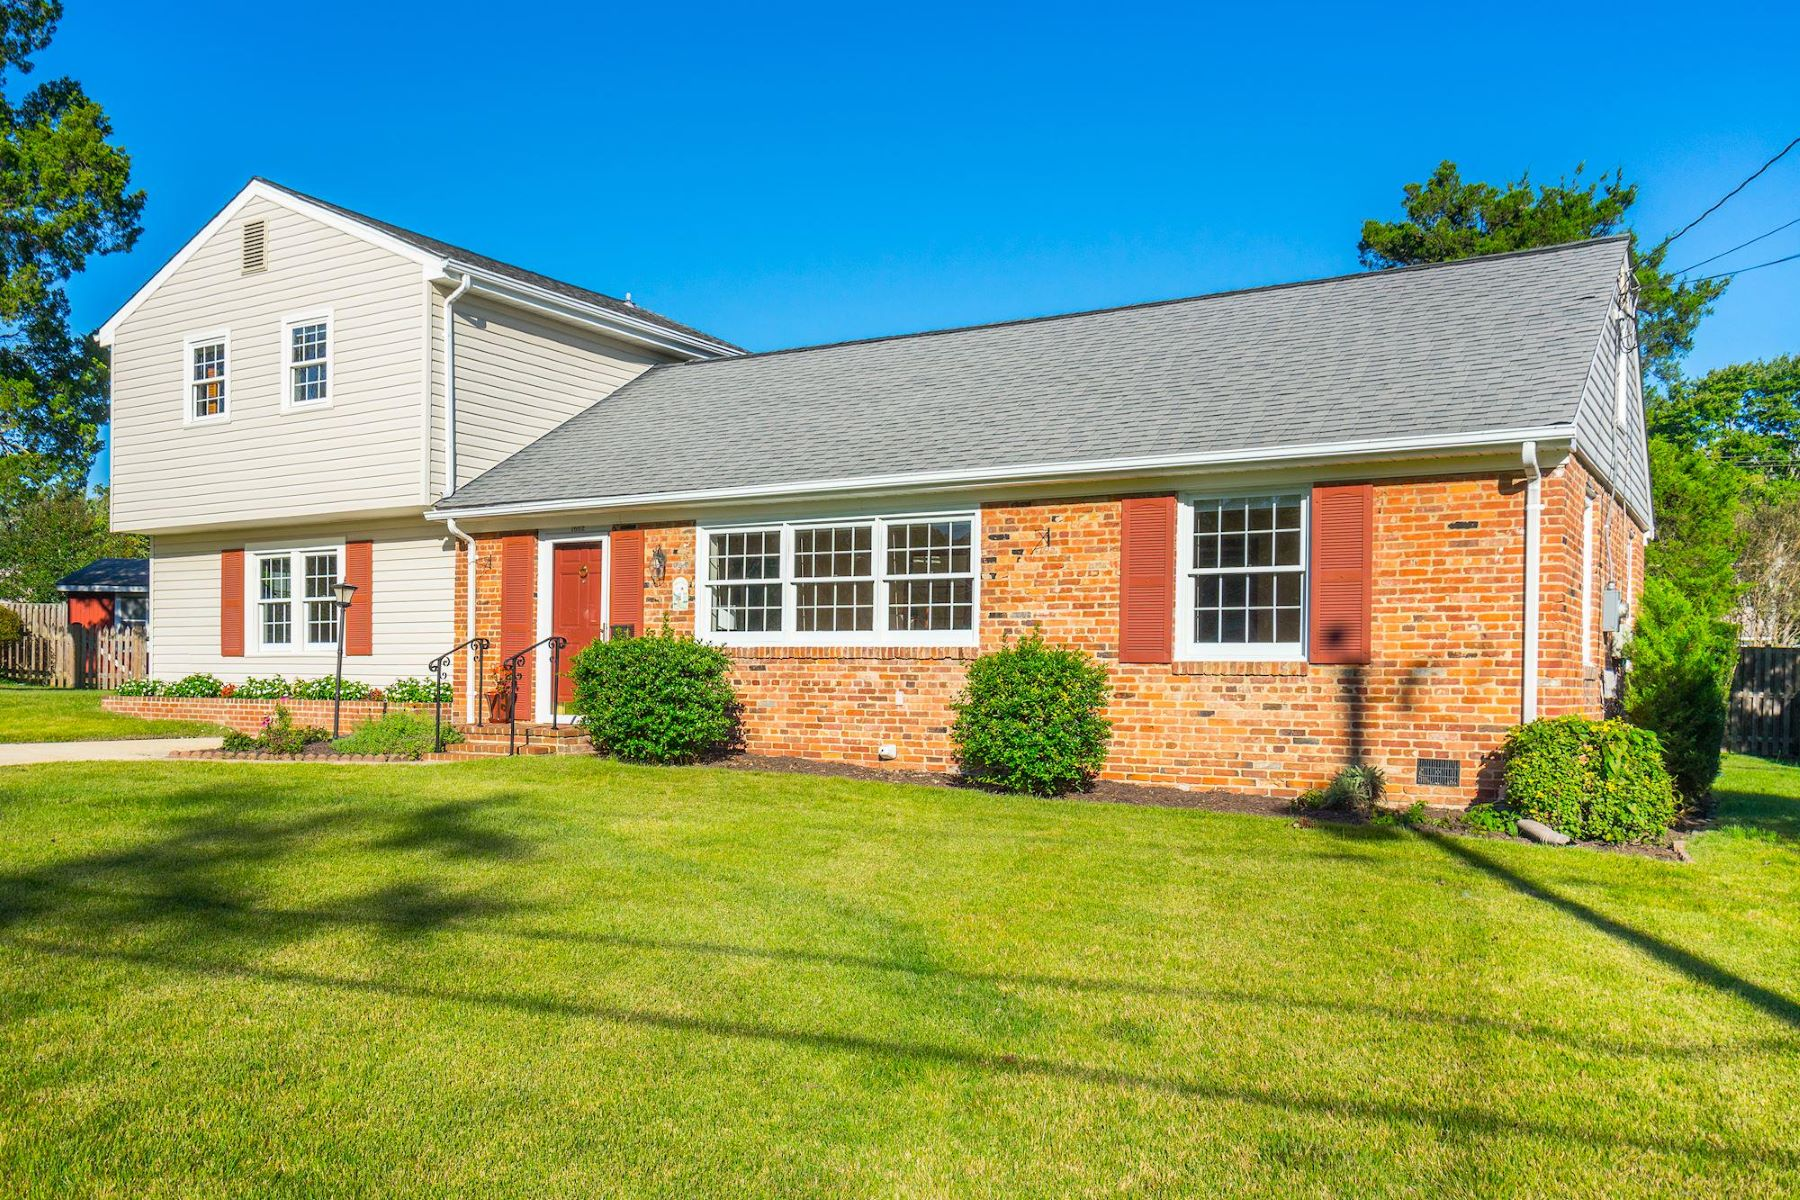 Property for Sale at 1602 Concord Pl 1602 Concord Pl Alexandria, Virginia 22308 United States